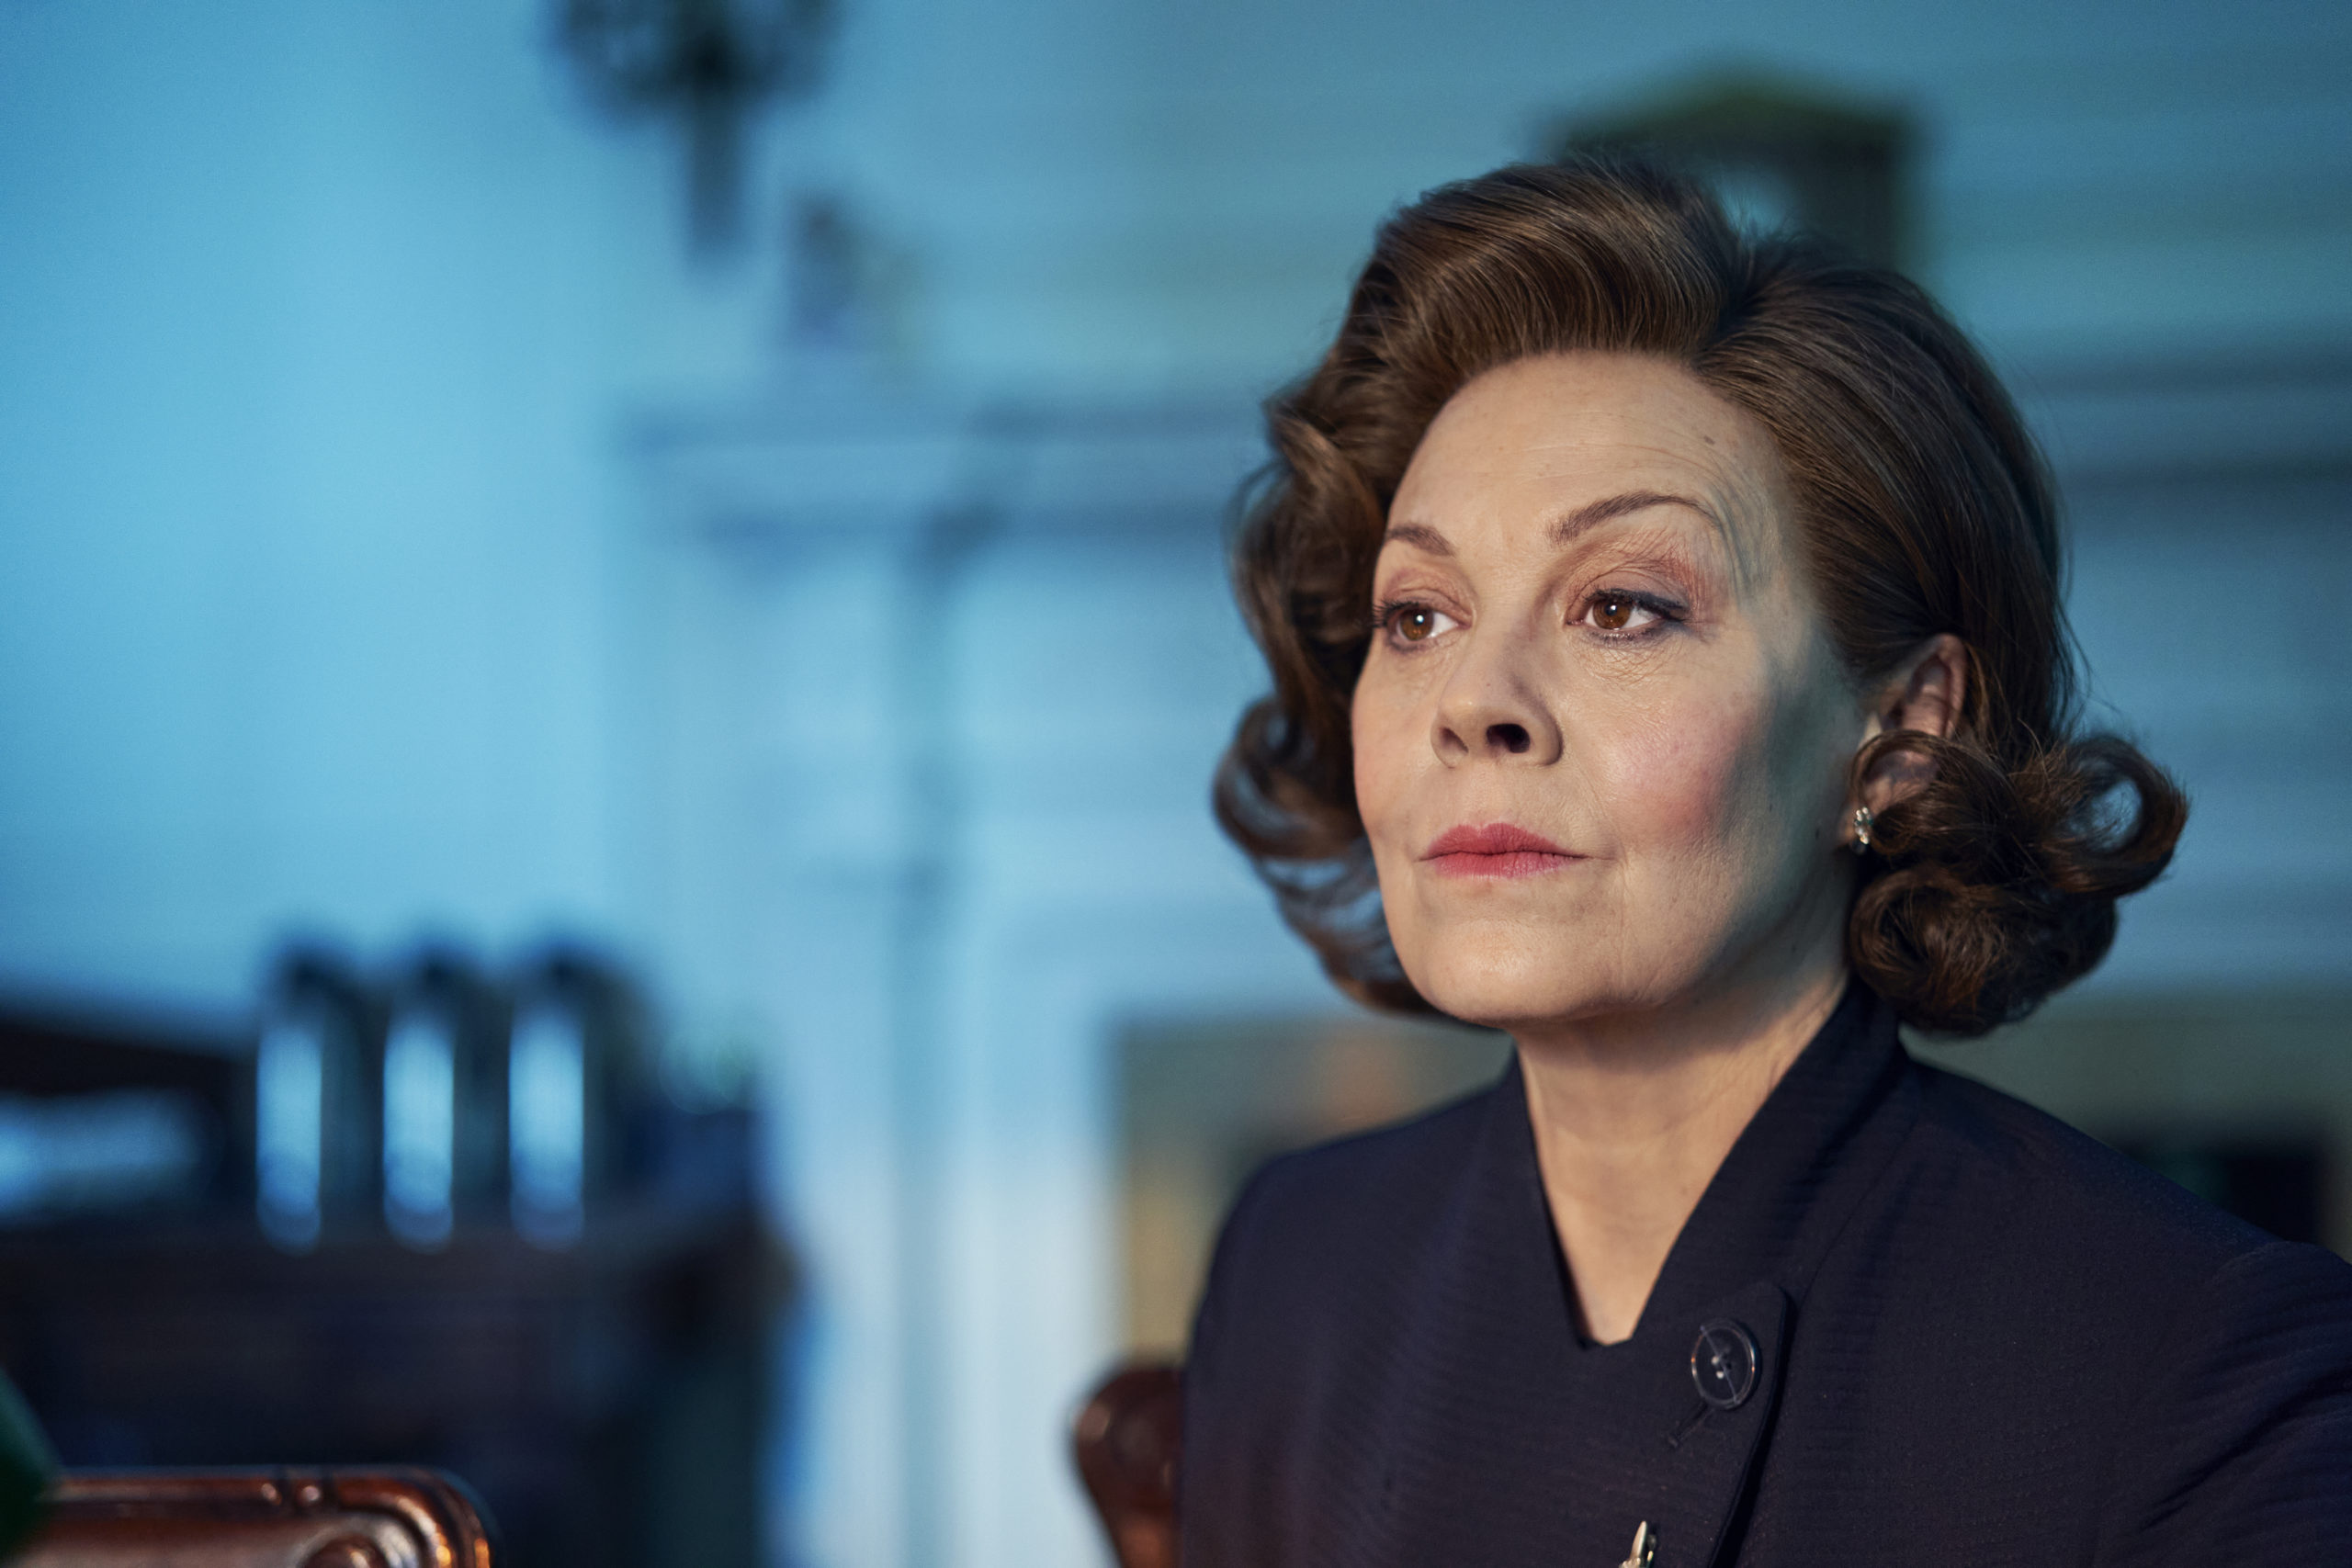 Helen McCrory as the PM in Roadkill